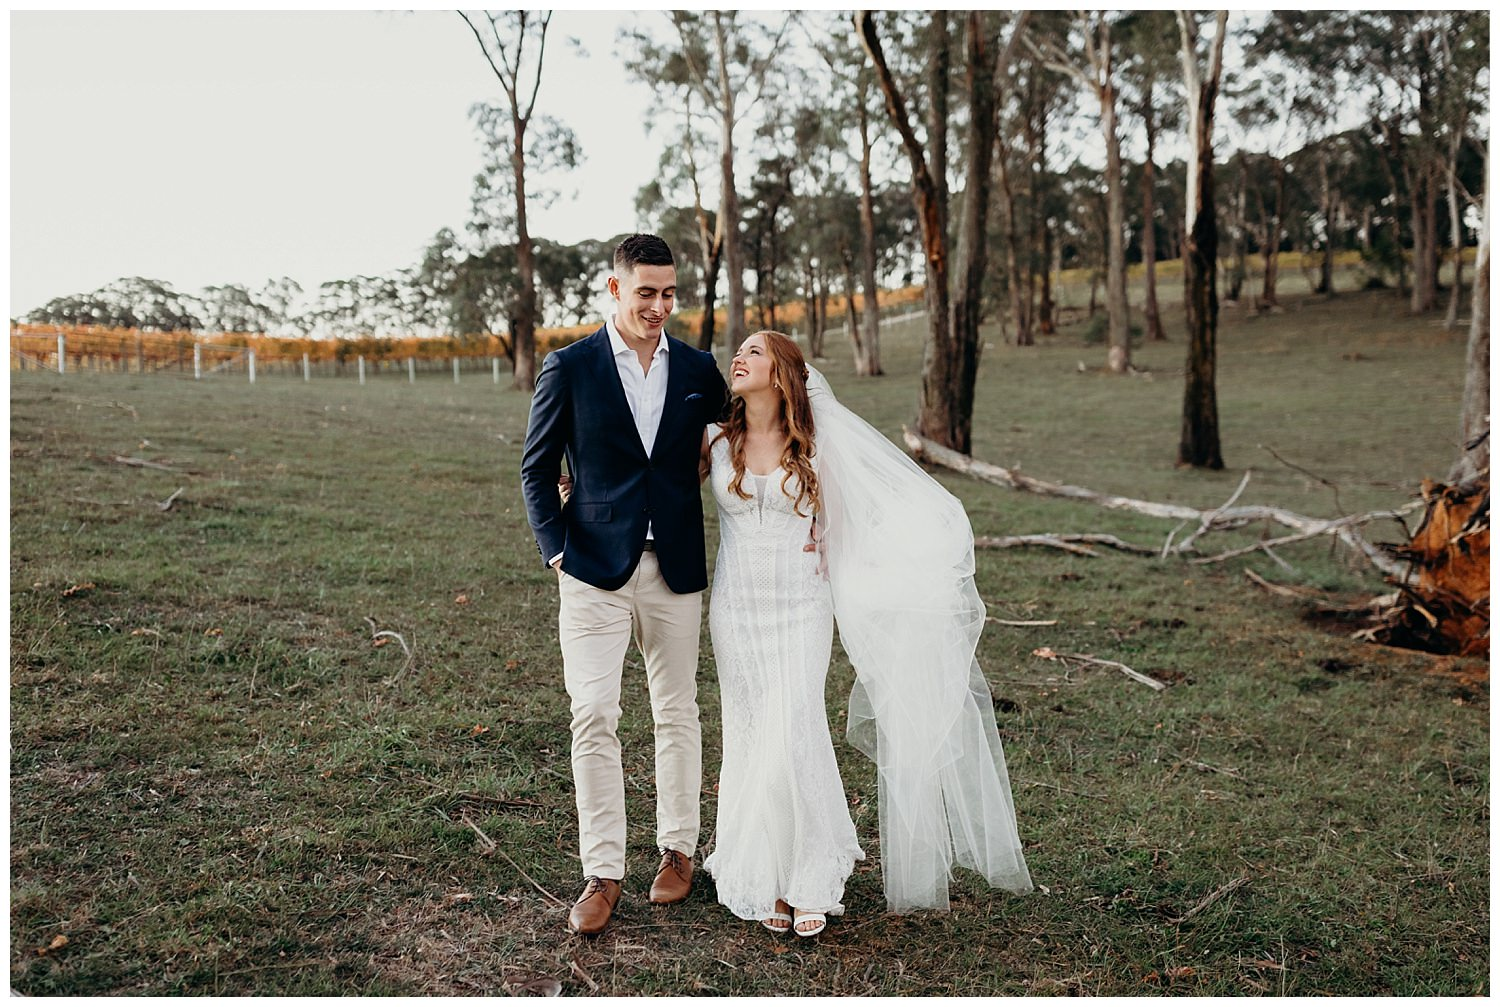 Bowral Southern Highlands Autumn Wedding - Bride and groom candid portrait